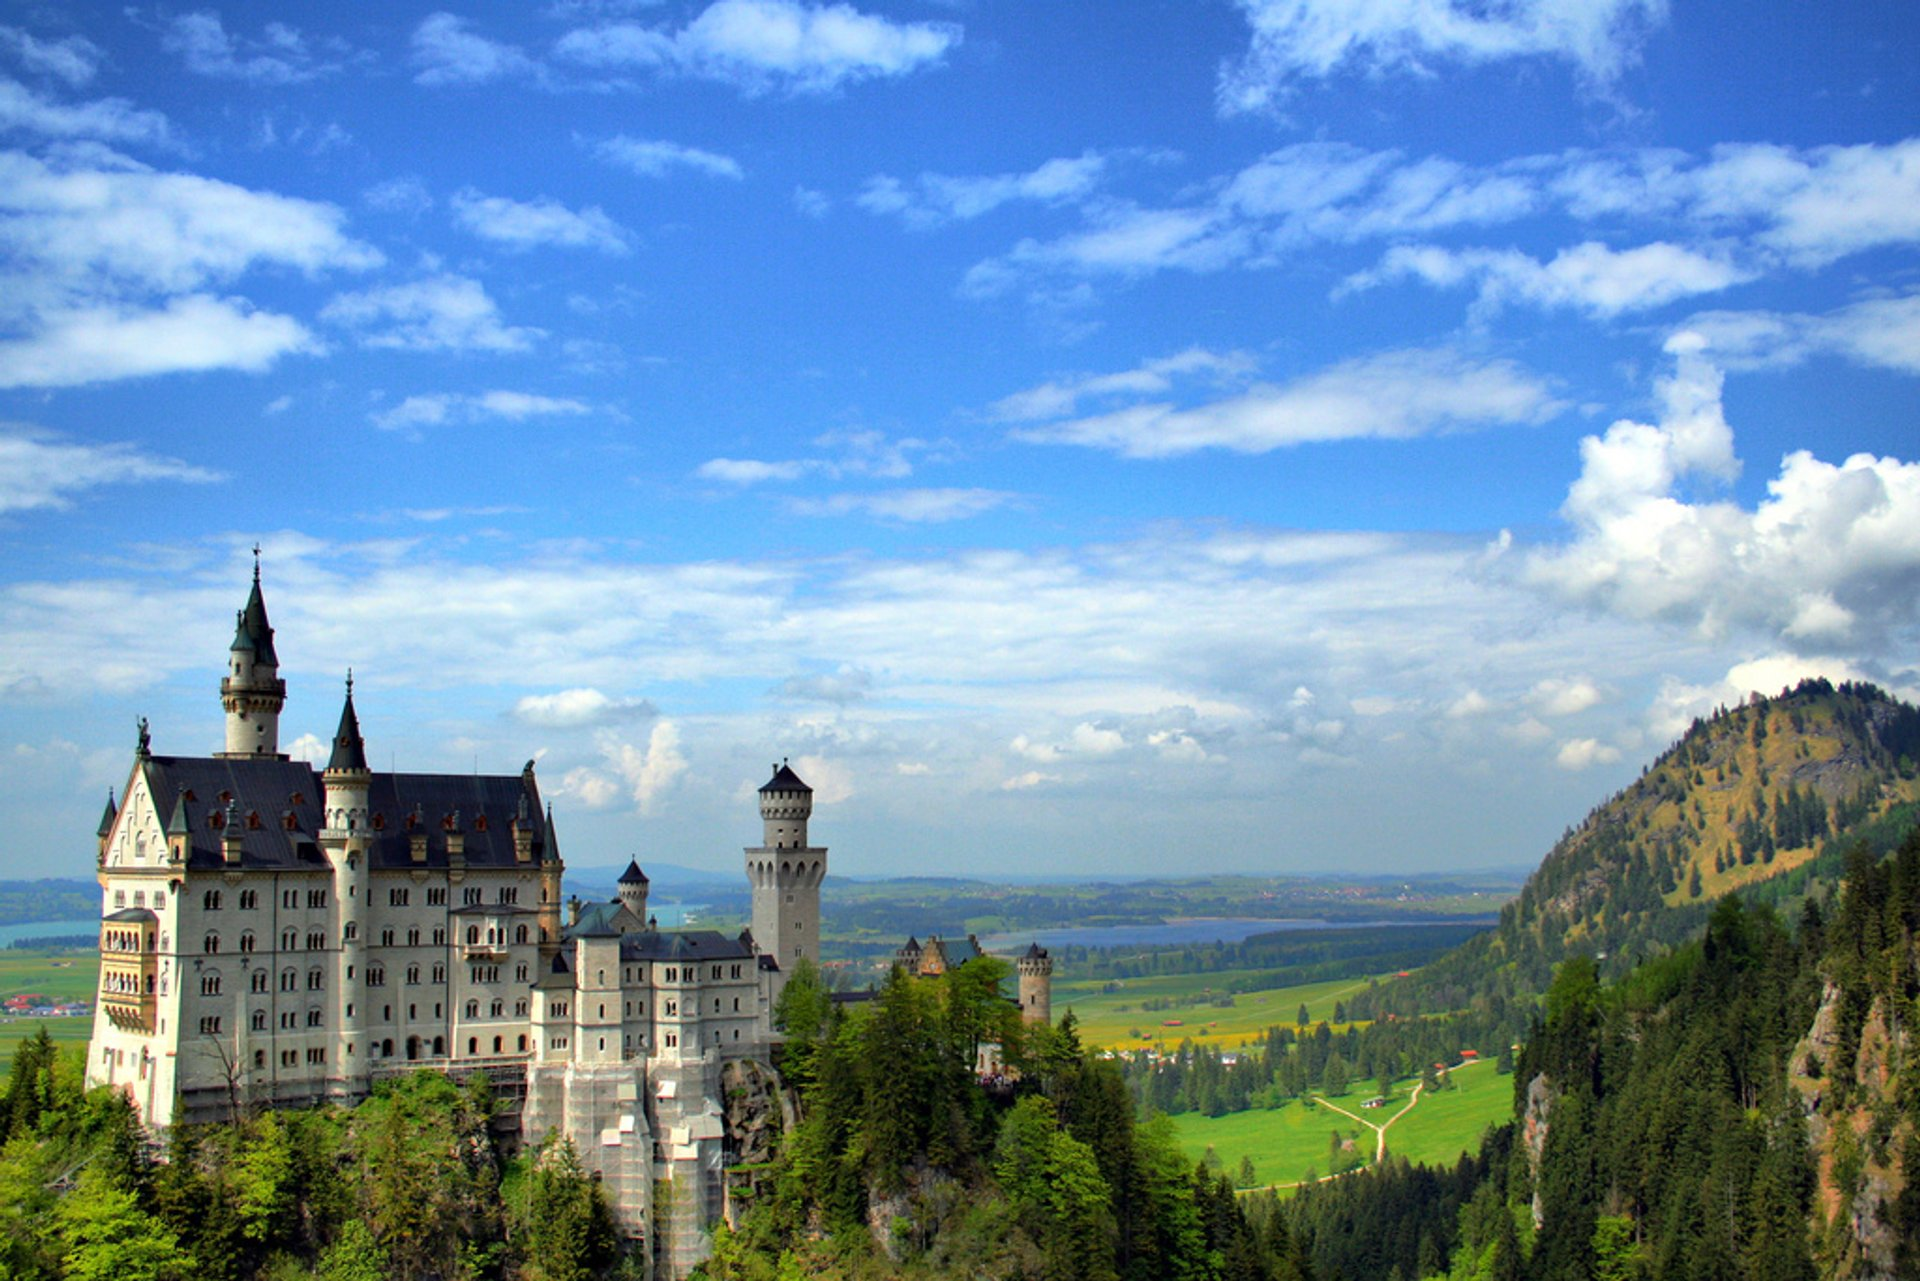 Castles and Nature in Bavaria 2019 - Best Time